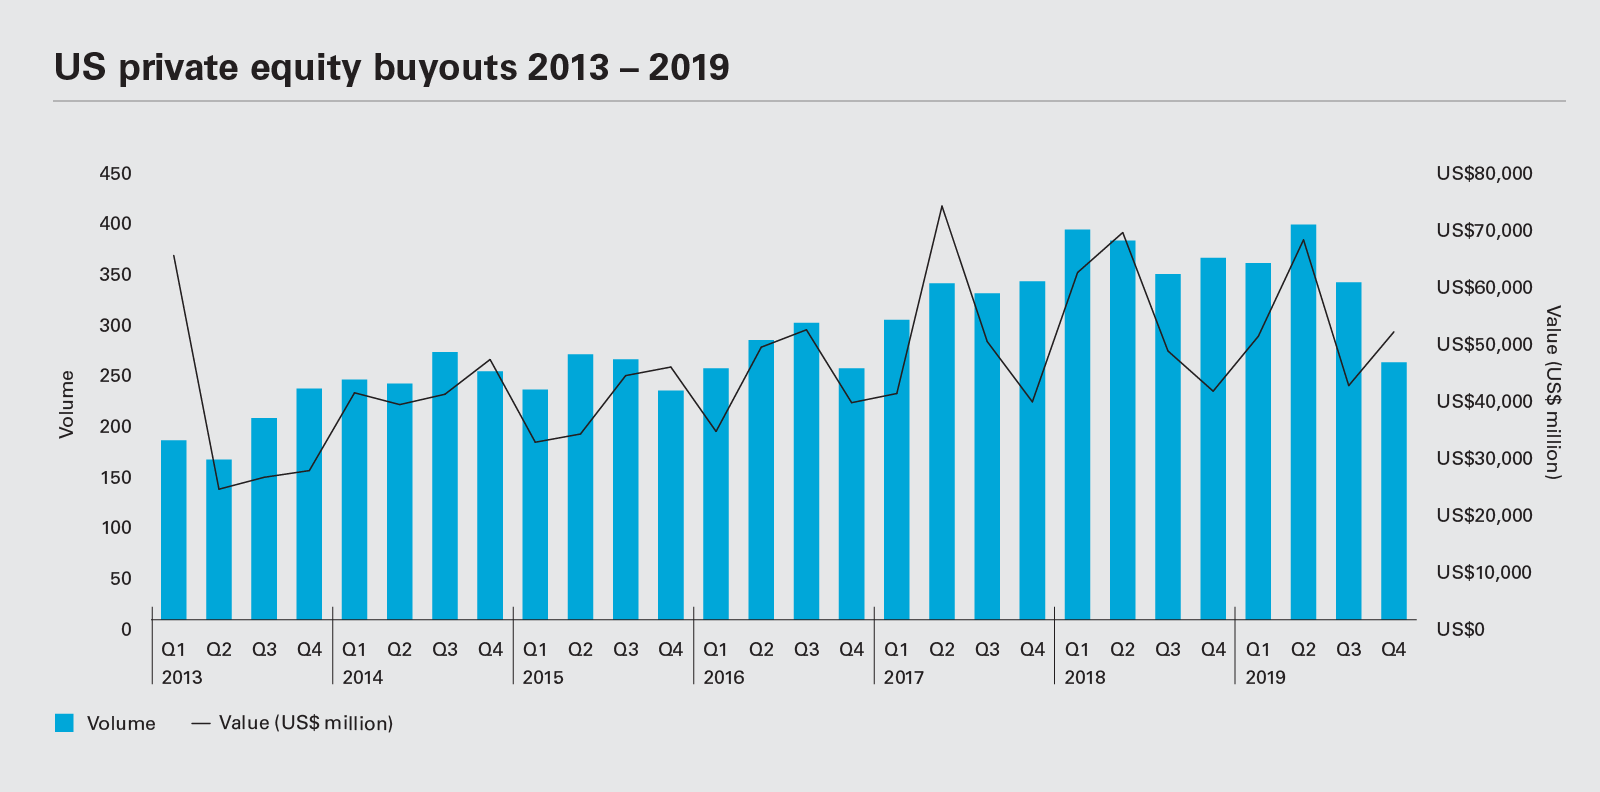 US private equity buyouts 2013 - 2019